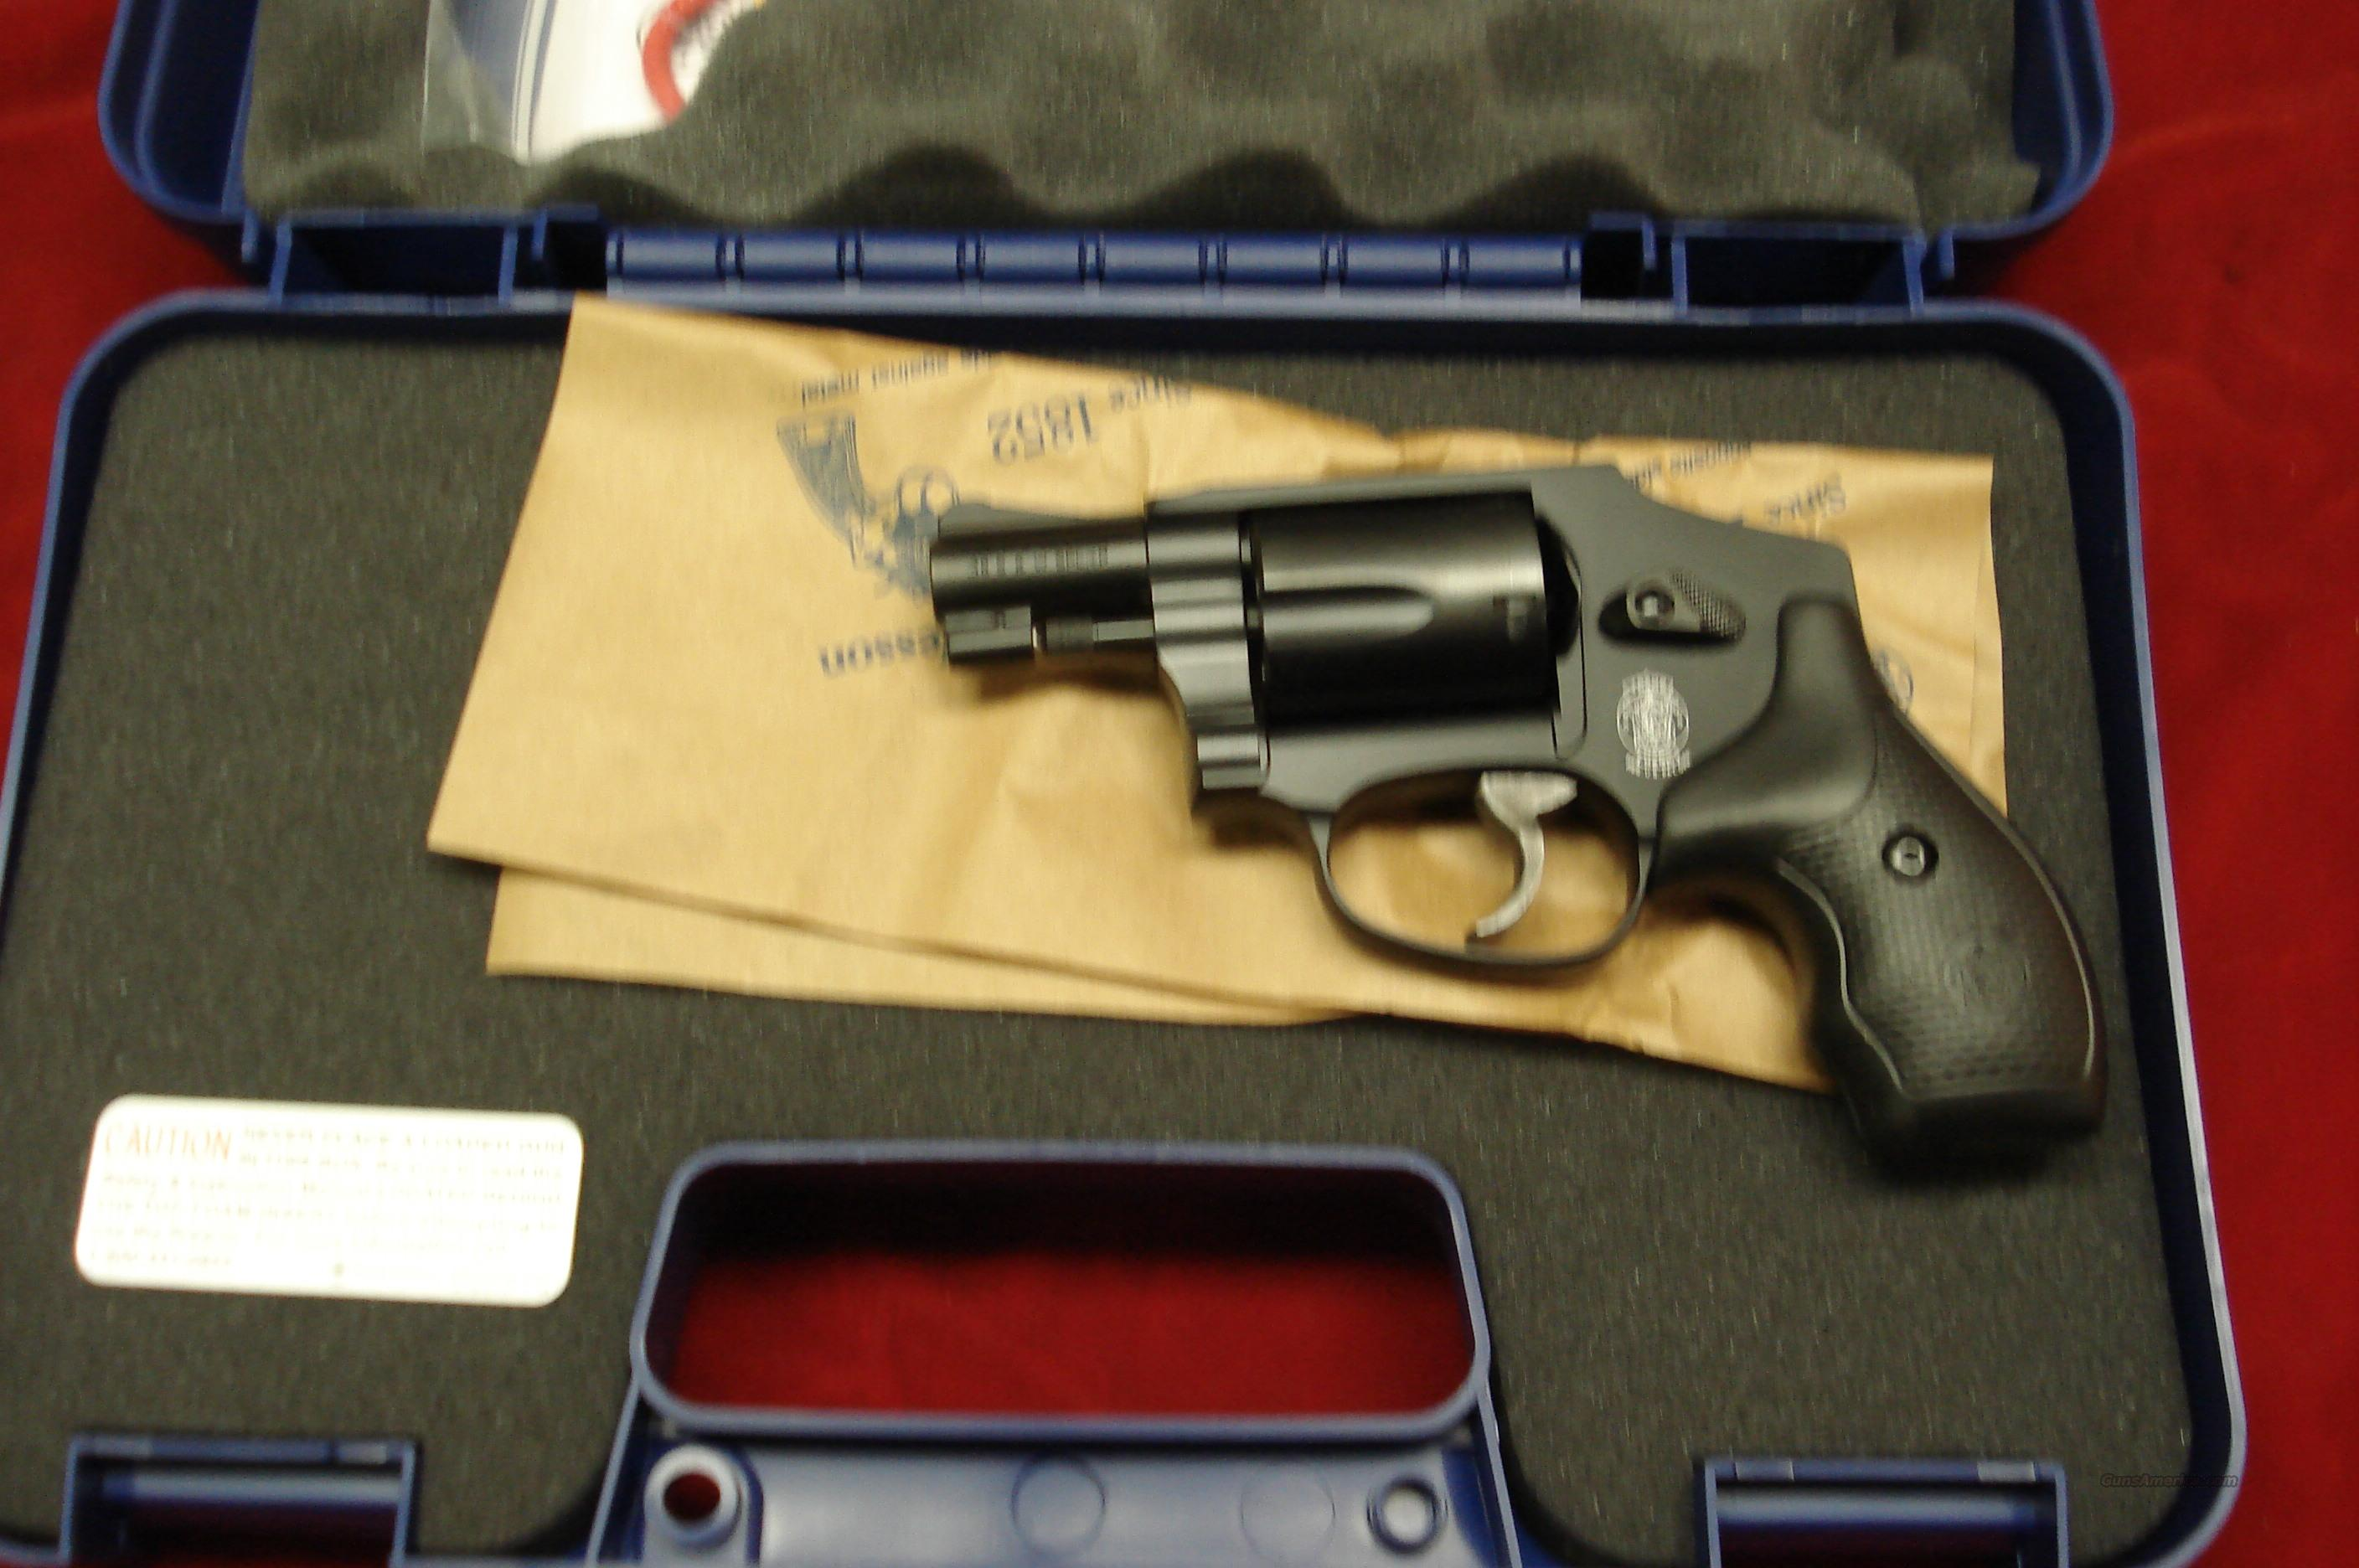 SMITH AND WESSON 442 AIRWEIGHT W/NO INTERNAL LOCK NEW   Guns > Pistols > Smith & Wesson Revolvers > Pocket Pistols